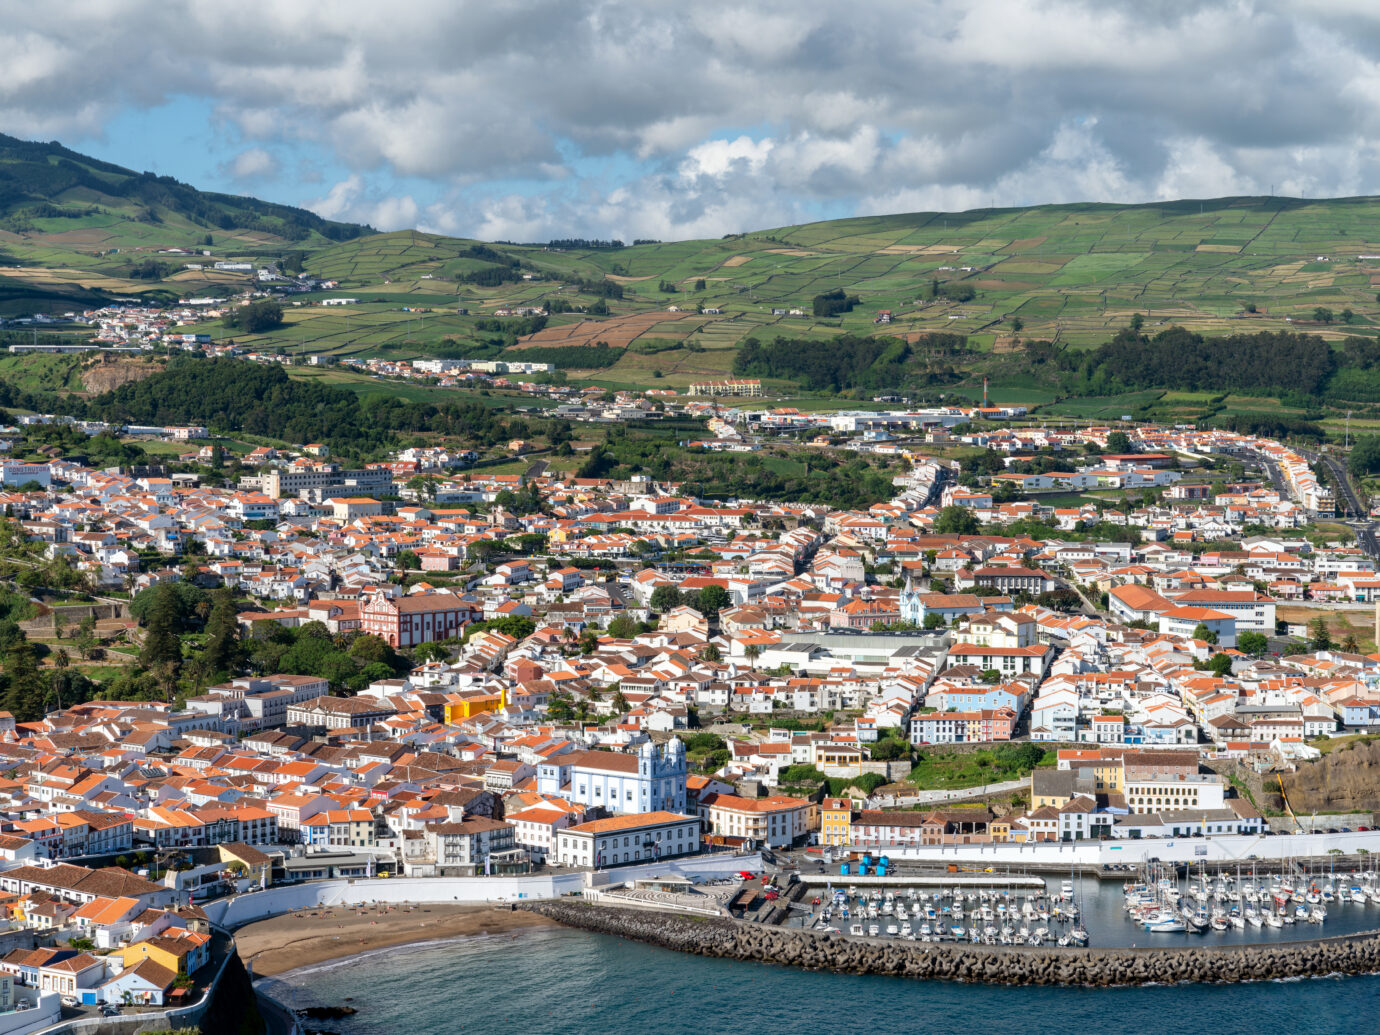 Town of Angra do Heroismo on Terciera Island, Azores